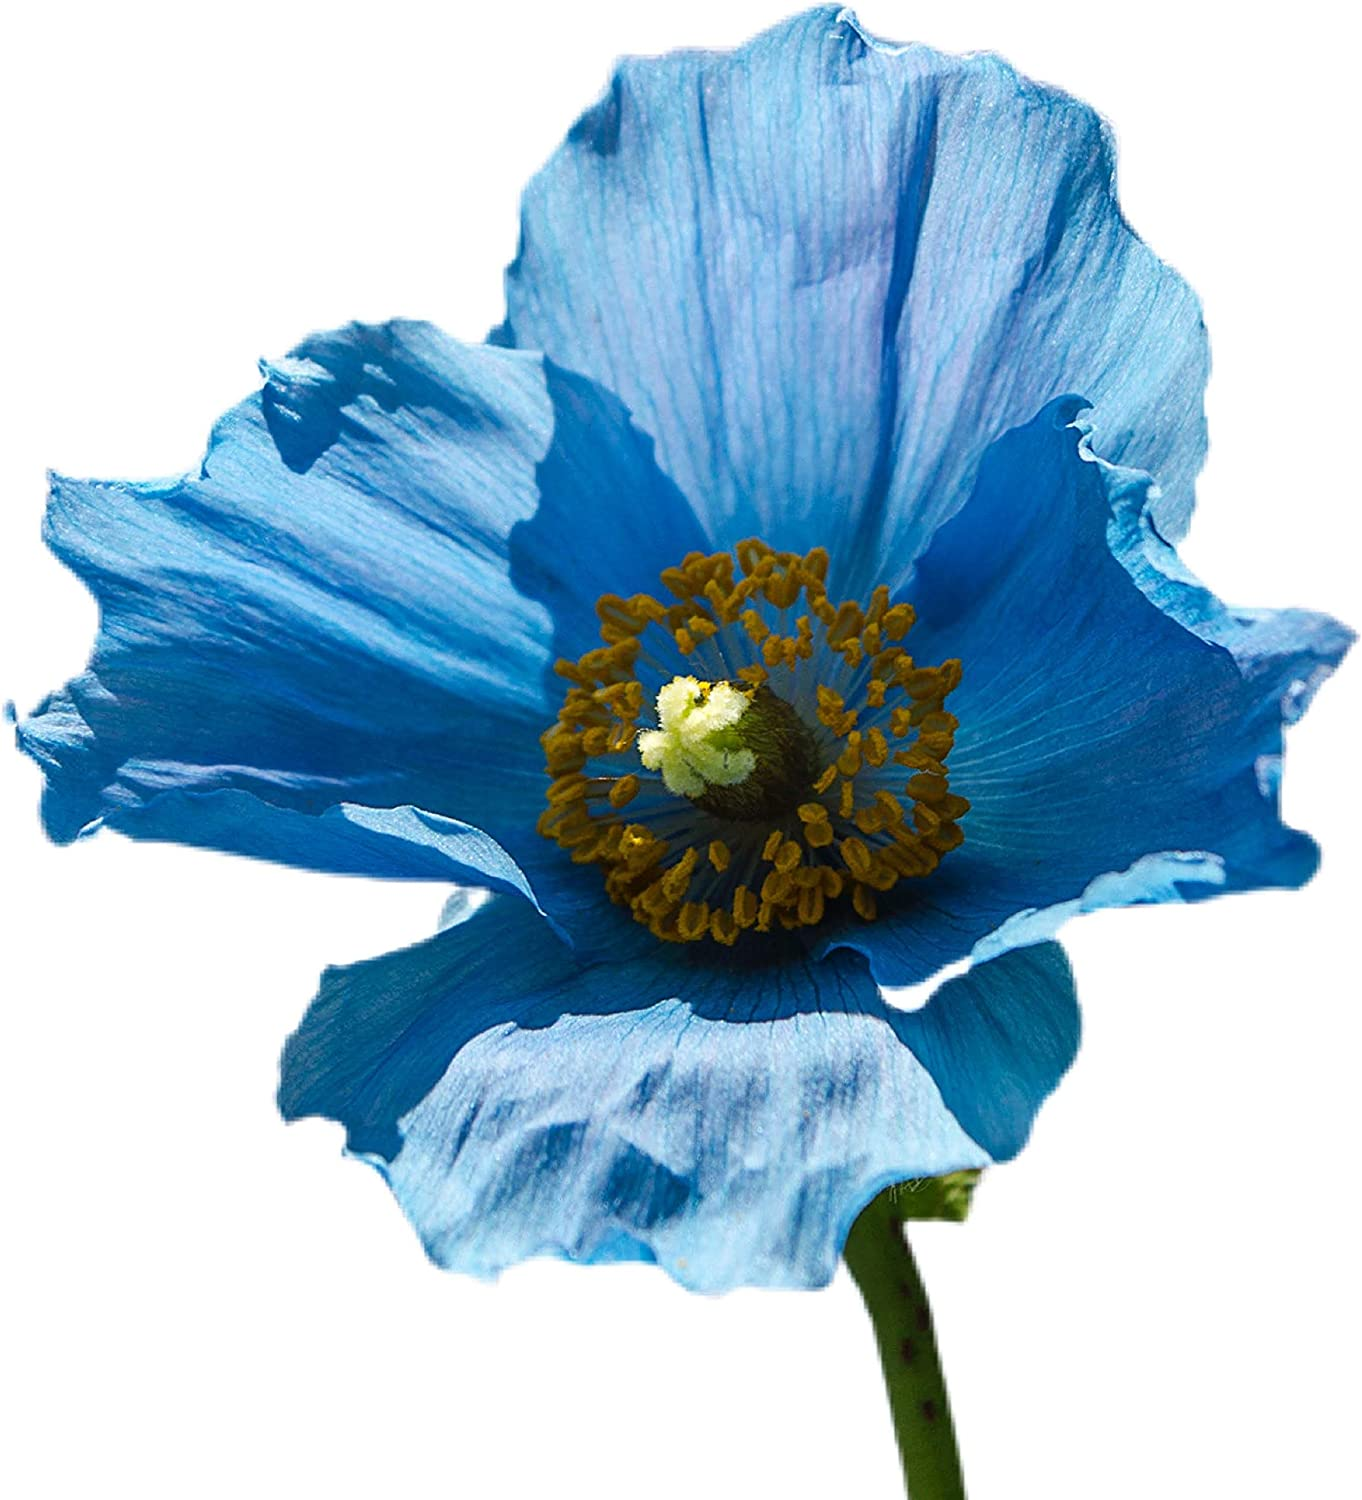 Ranking integrated 1st place Himalayan Poppy Seeds Heirloom Flower 1 GMO - Non High quality new +